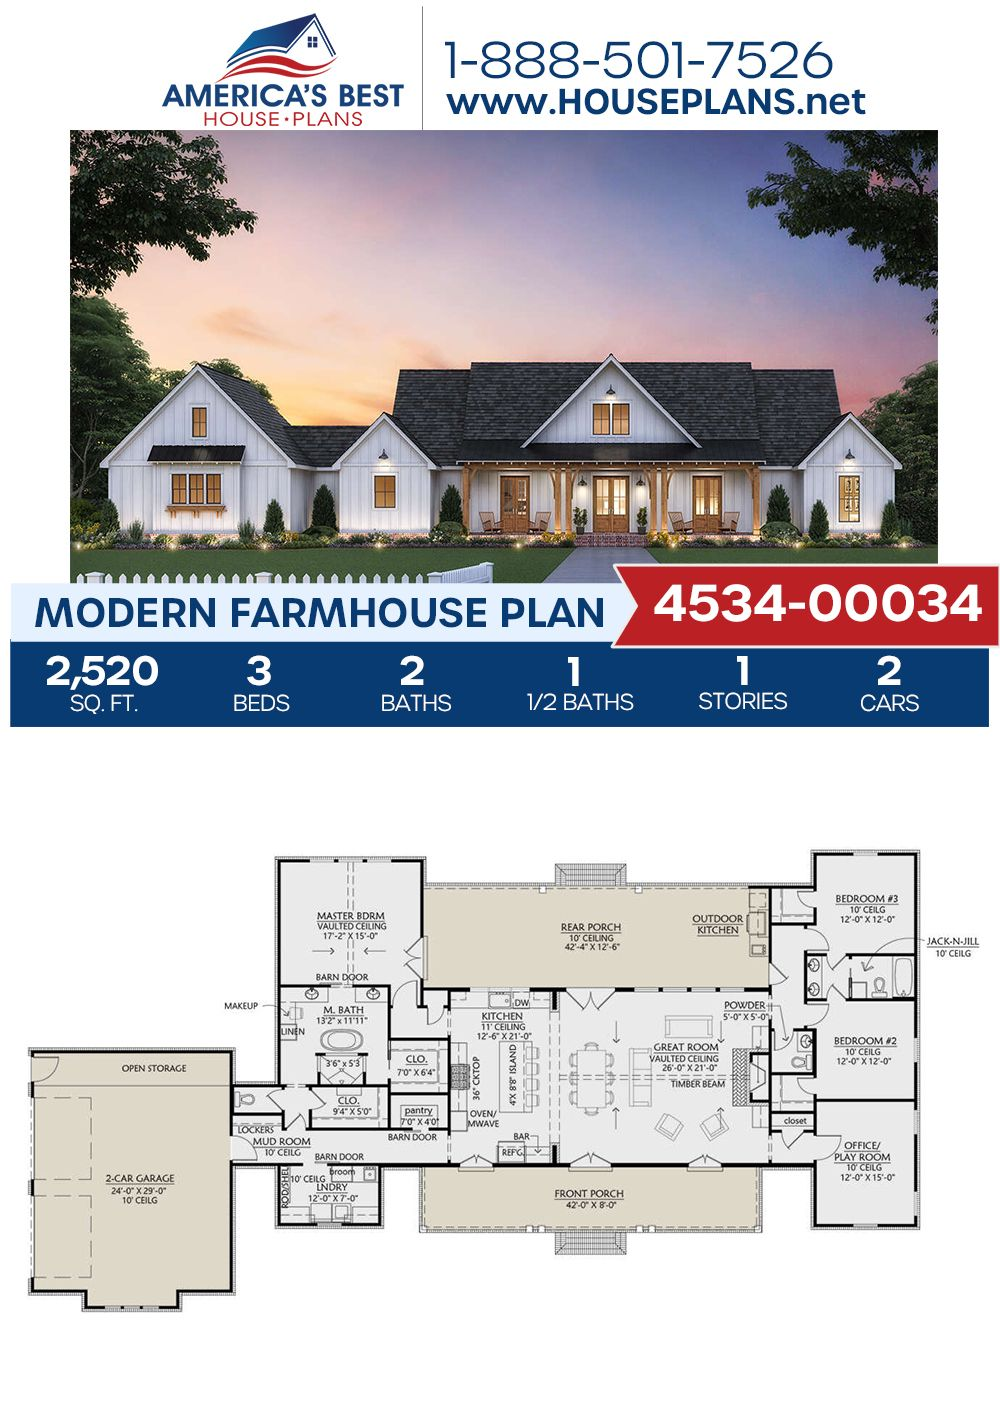 House Plan 4534 00034 Modern Farmhouse Plan 2 520 Square Feet 3 Bedrooms 2 5 Bathrooms In 2020 Modern Farmhouse Plans House Plans Farmhouse Farmhouse Plans